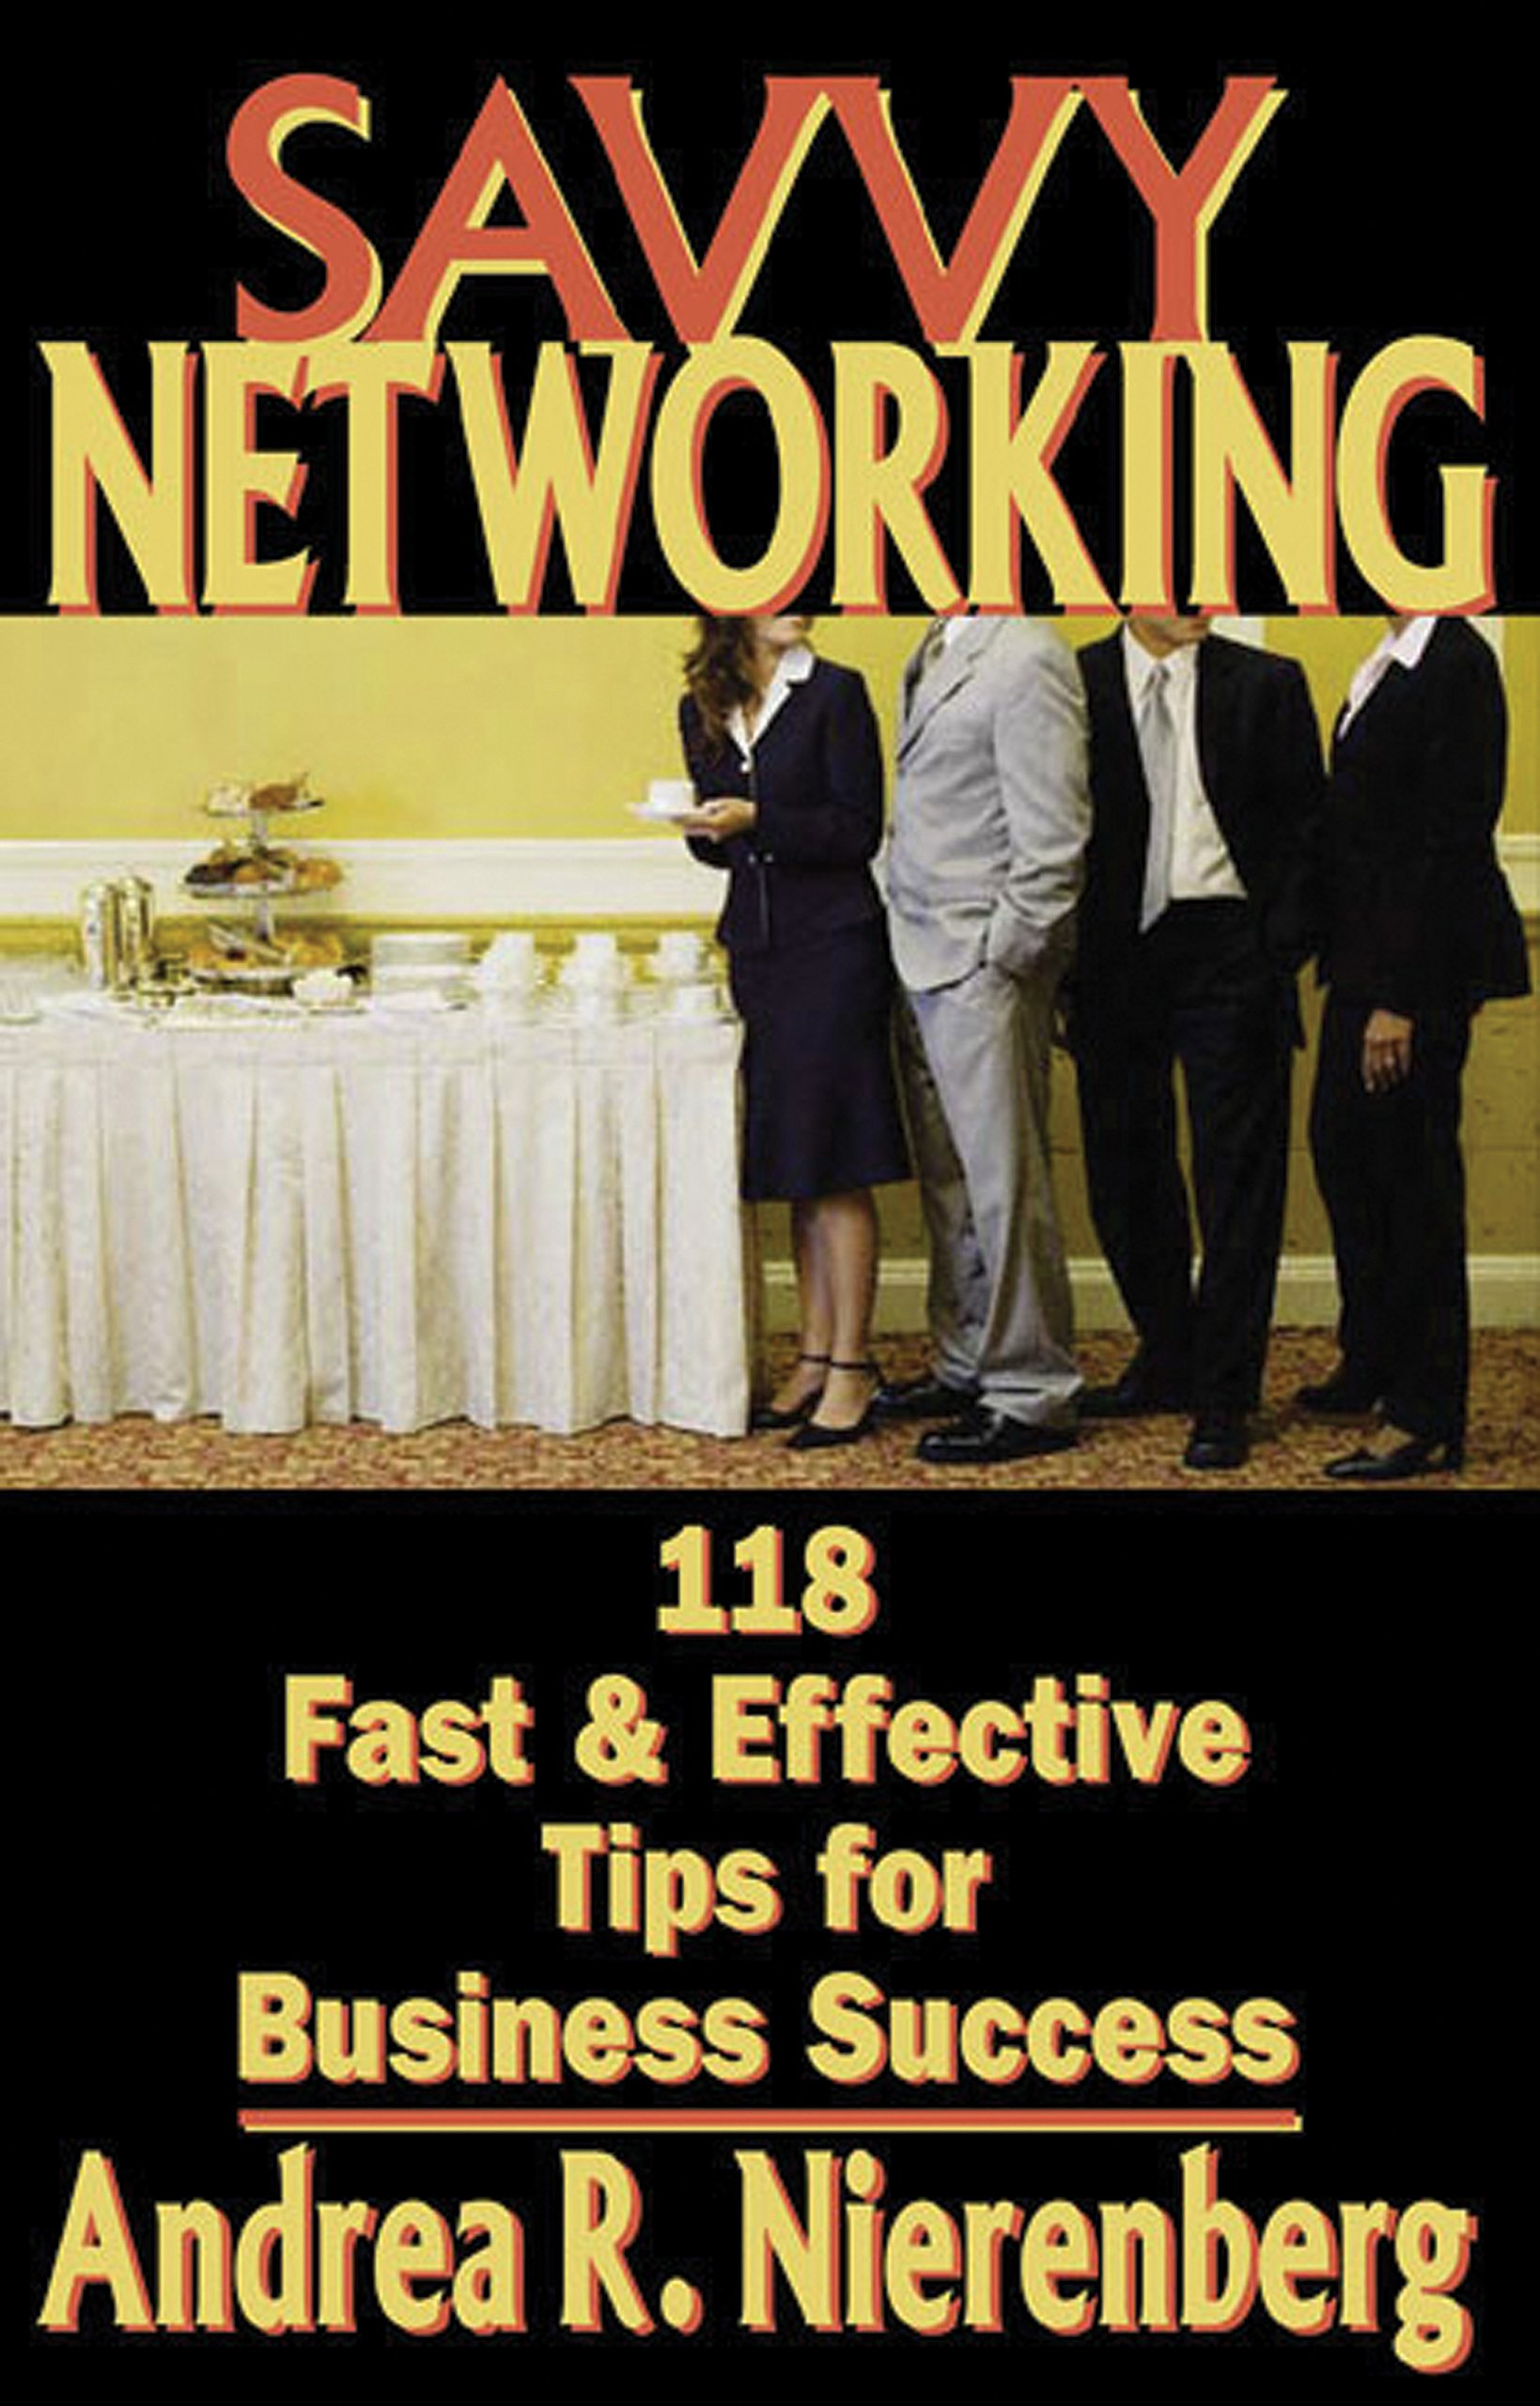 Savvy Networking: 118 Fast & Effective Tips for Business Success pdf